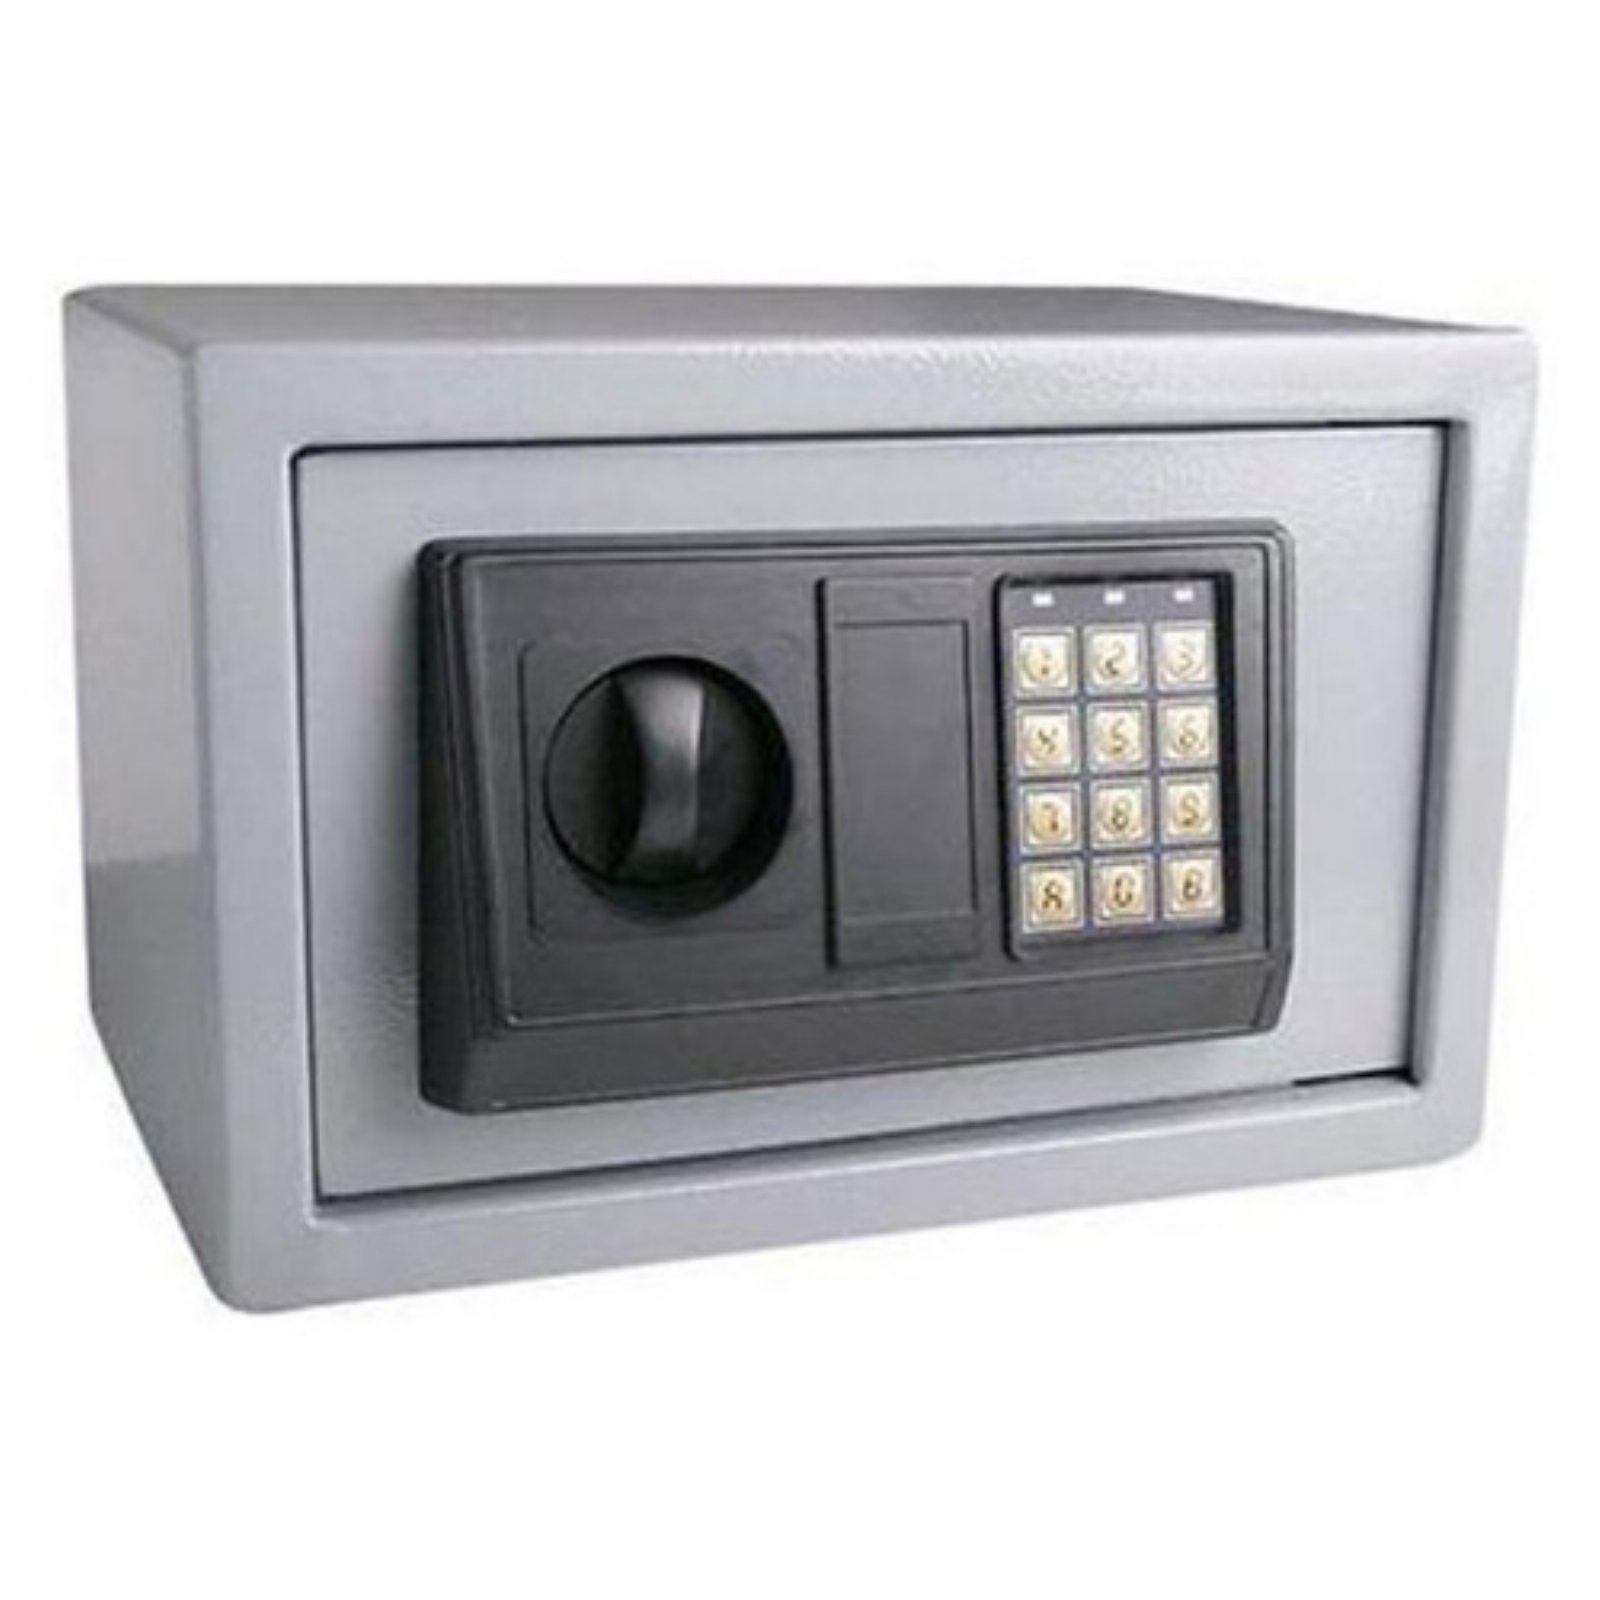 ALEKO Electronic Digital Safe Box for Gun or Jewelry